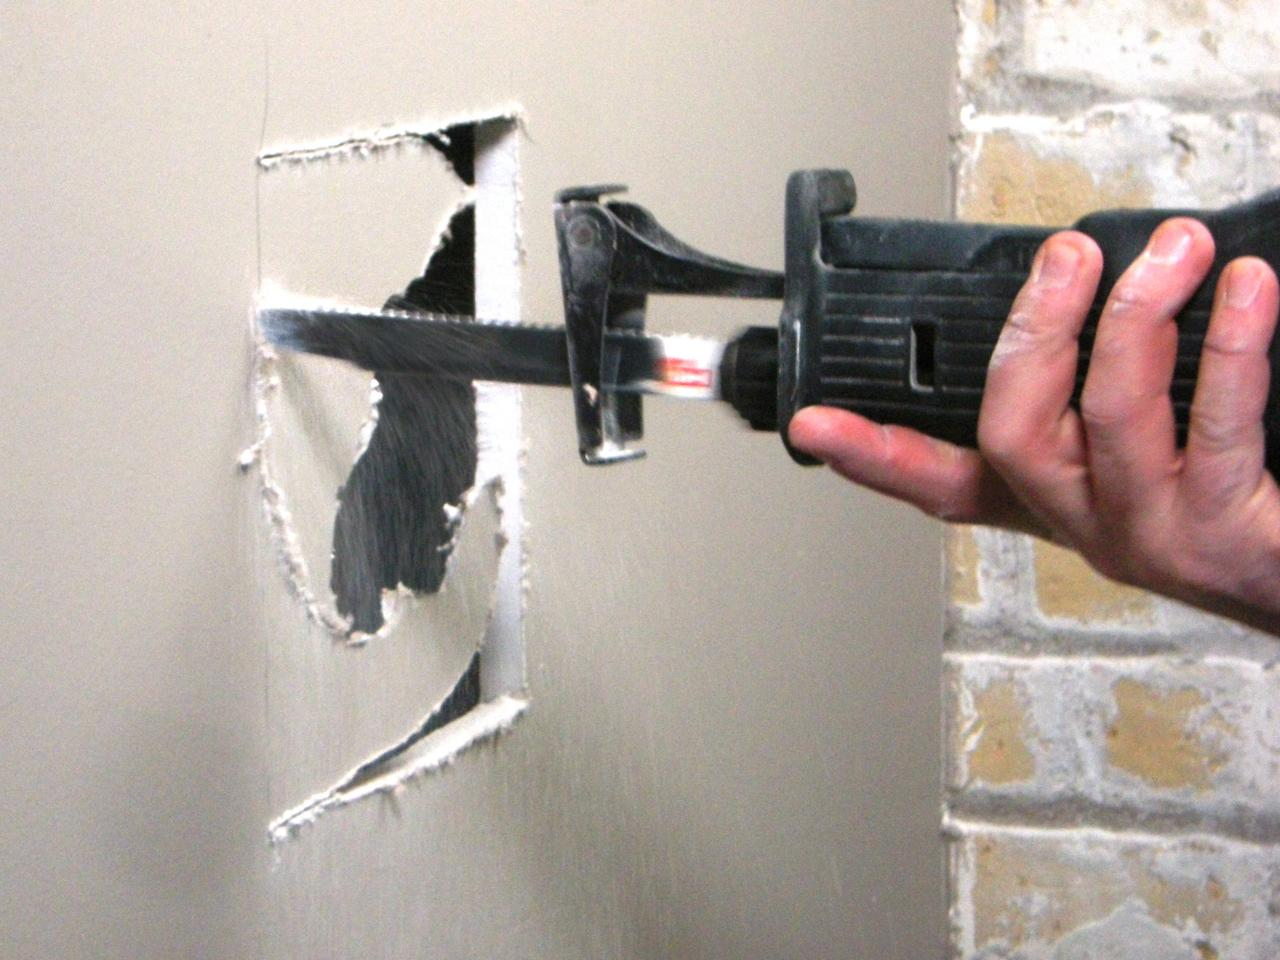 How to repair large hole in drywall - Ultimate How To_drywall Repair Med Hole 04_s4x3